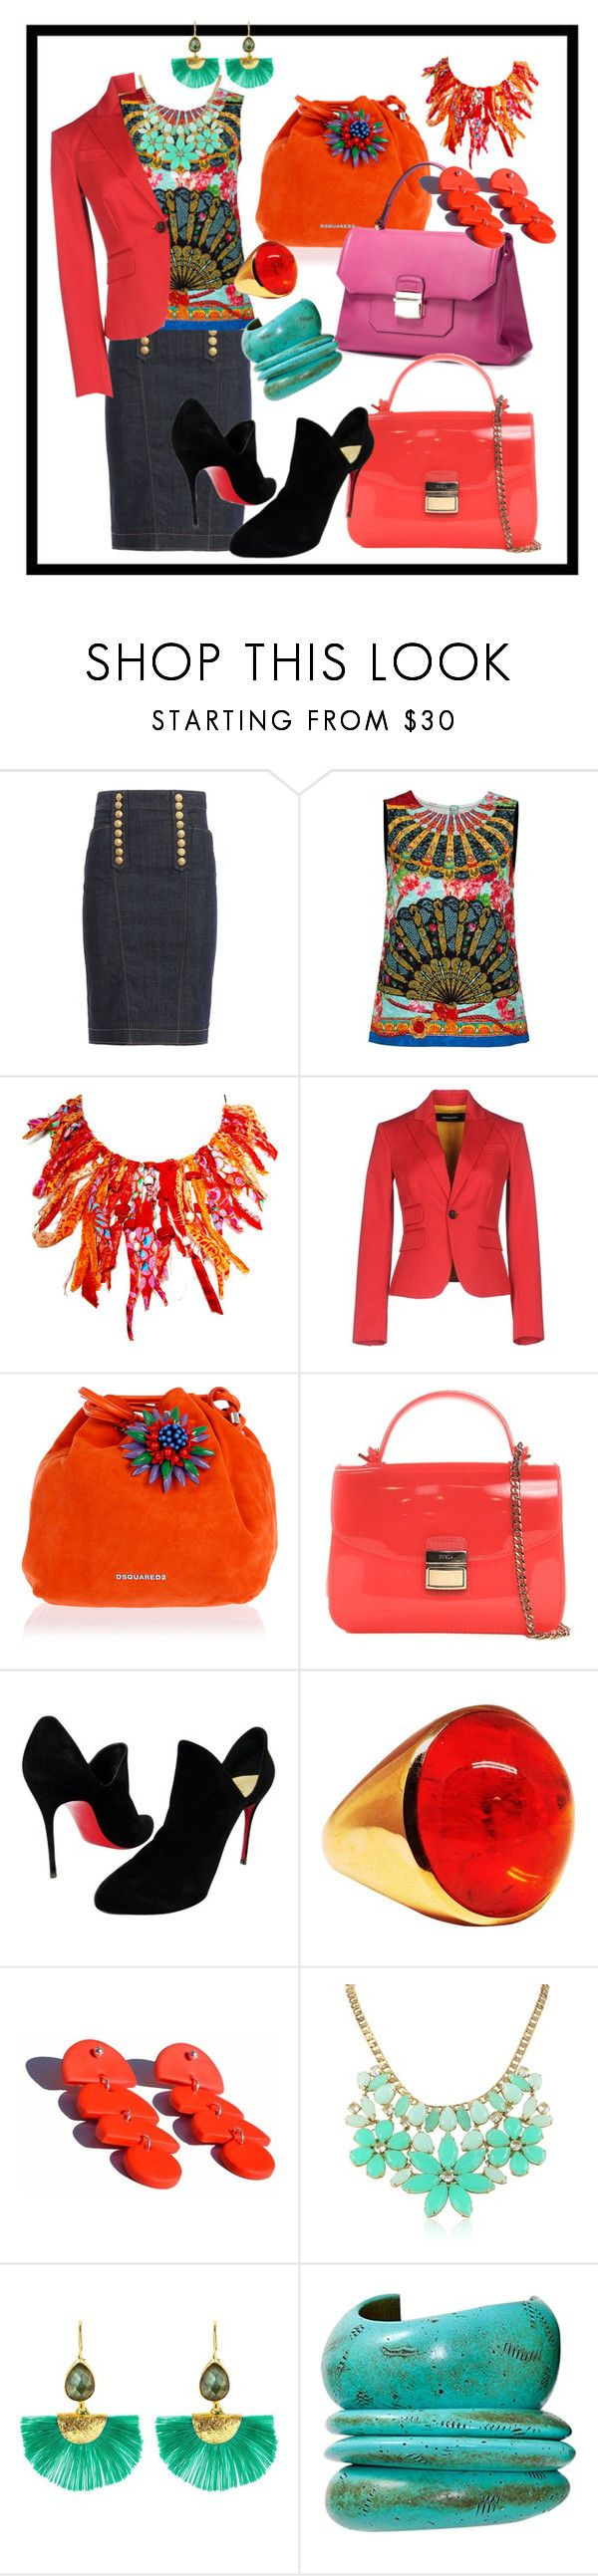 """""""Multiple Accessory Options Because Of The Color In The Blouse"""" by kareng-357 ❤ liked on Polyvore featuring Dsquared2, Dolce&Gabbana, NuCèlle, Furla, Christian Louboutin, Veda, Kate Spade and Ottoman Hands"""